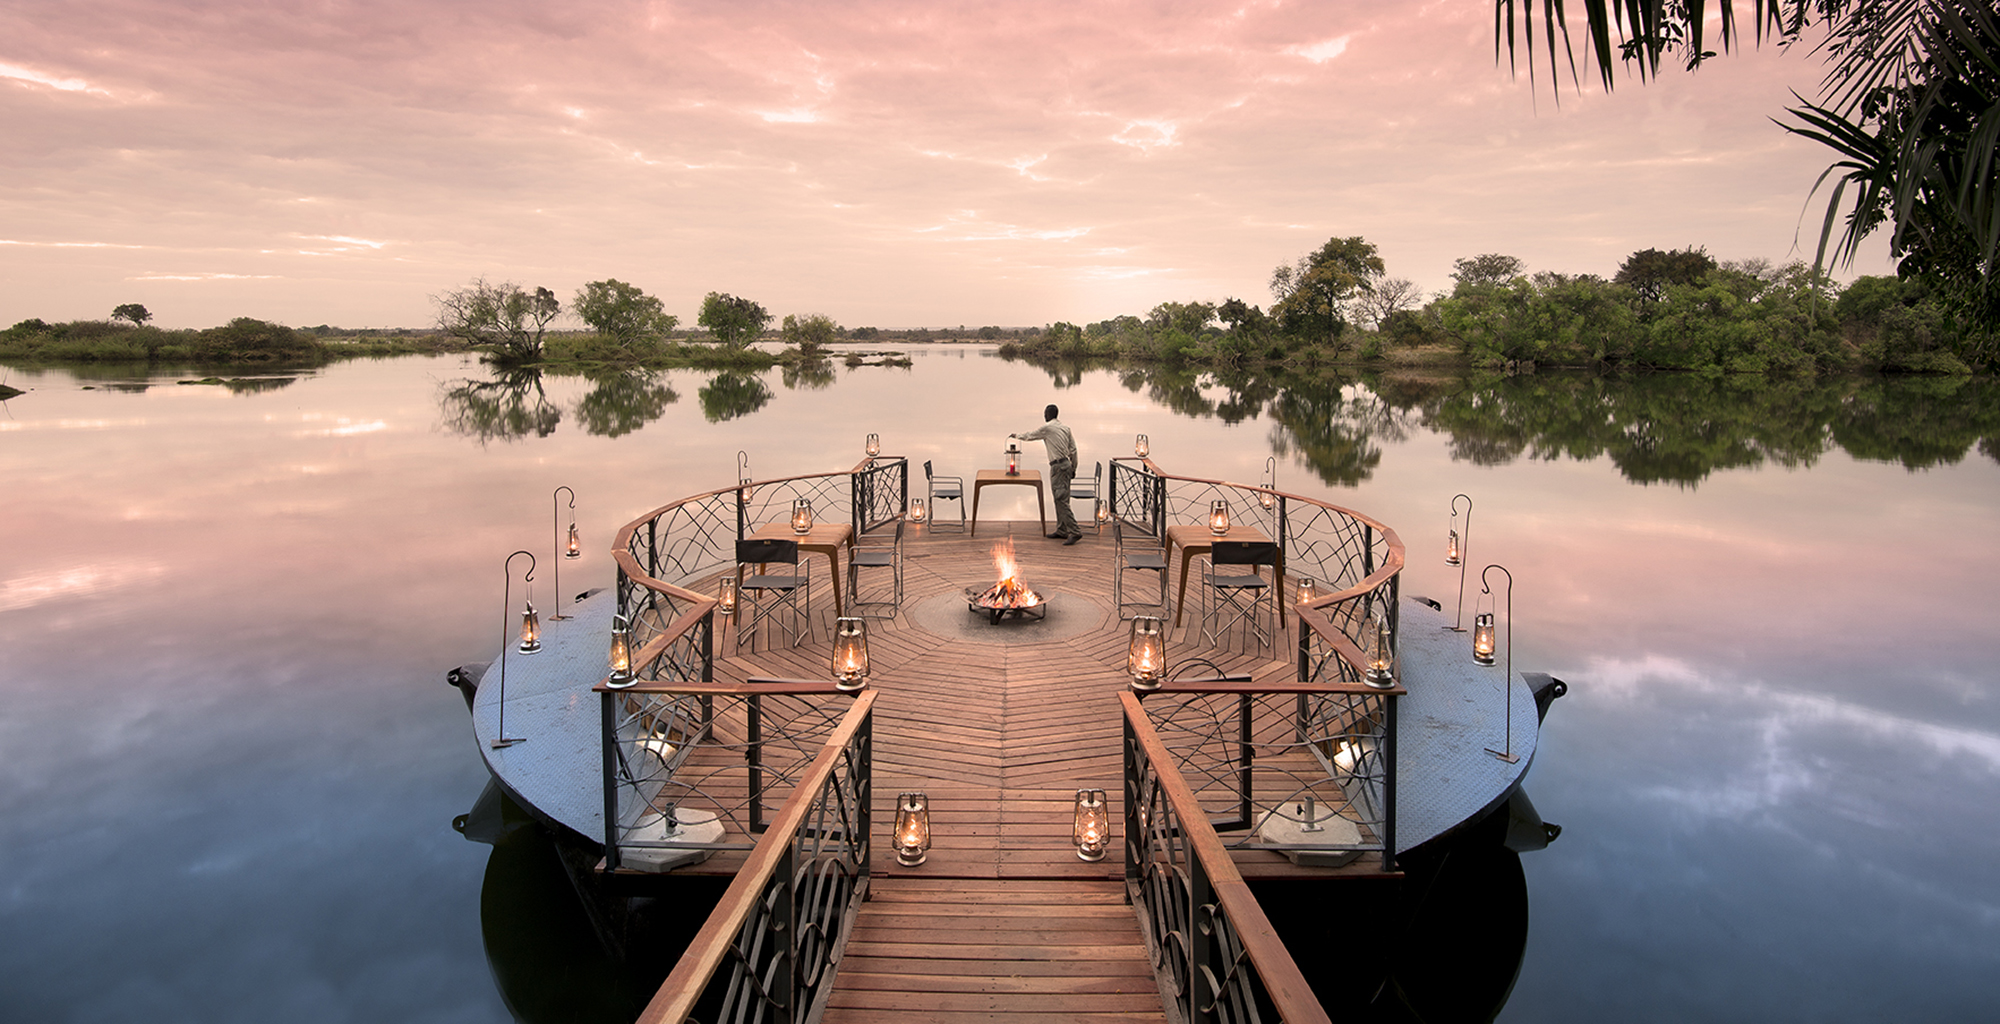 Zambia-Thorntree-River-Lodge-Deck